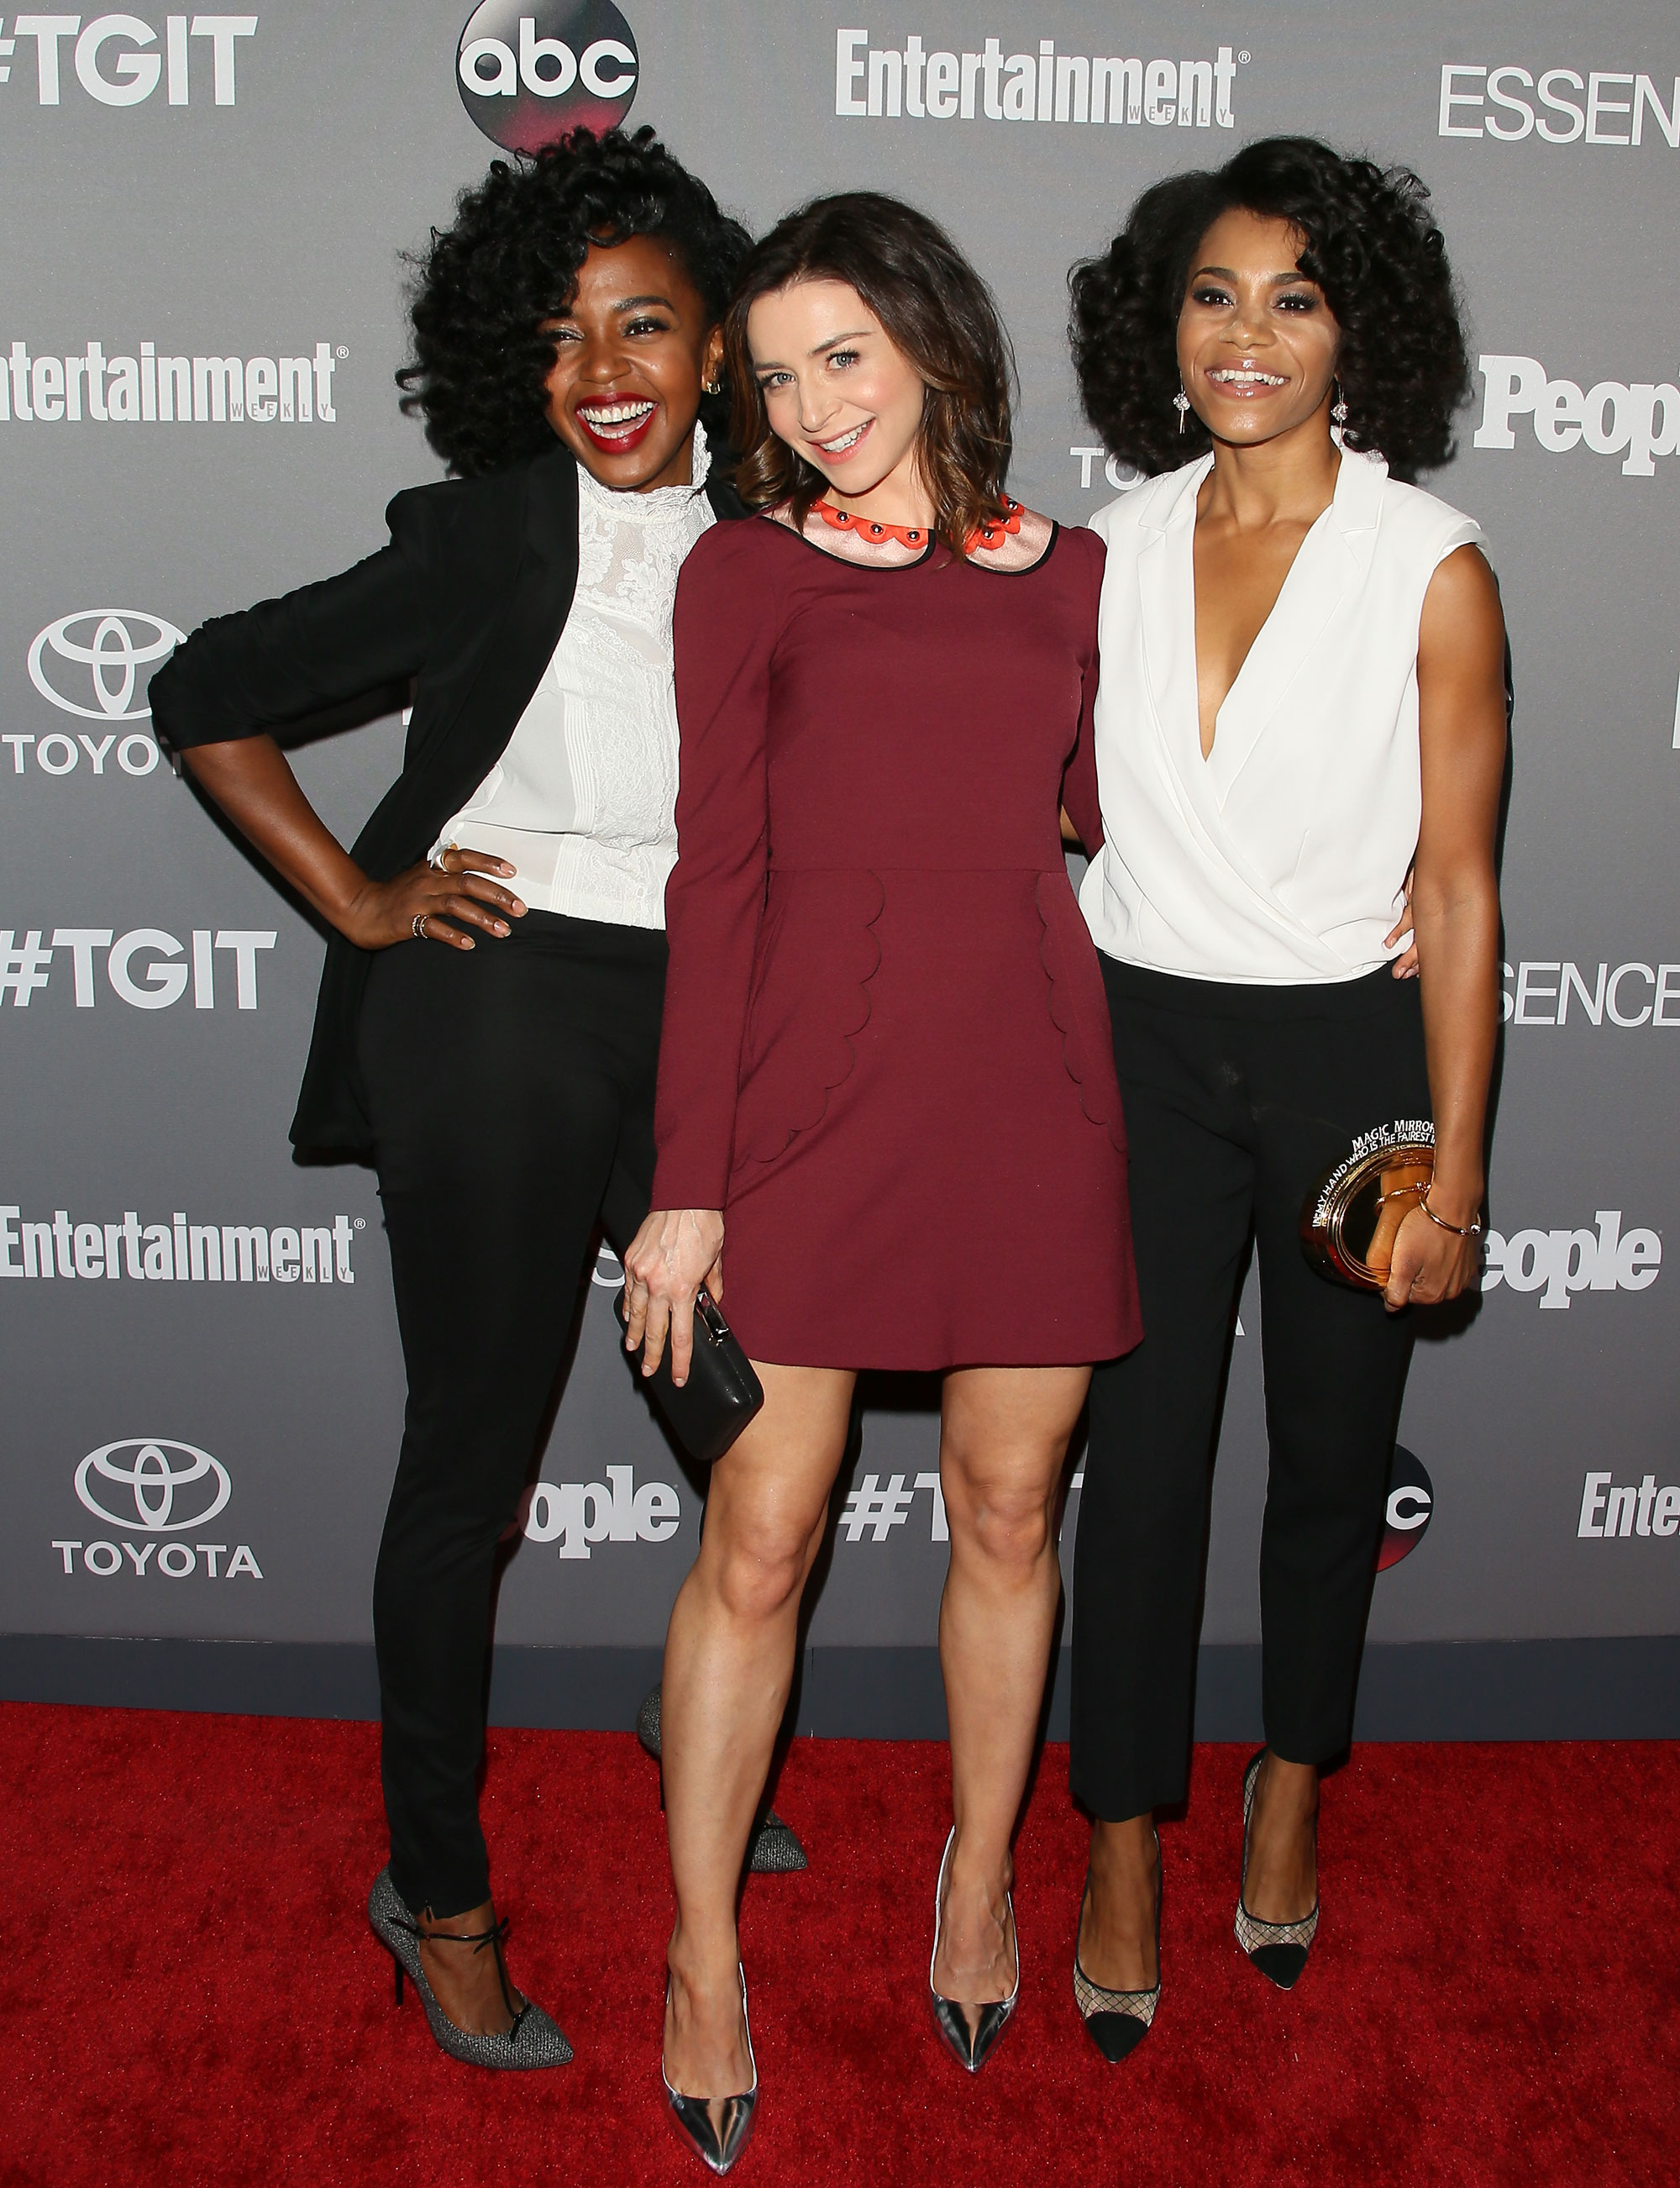 Kelly McCreary, Jerrika Hinton and Caterina Scorsone attend the Celebration of ABC's TGIT Line-up on September 26, 2015 in West Hollywood, California